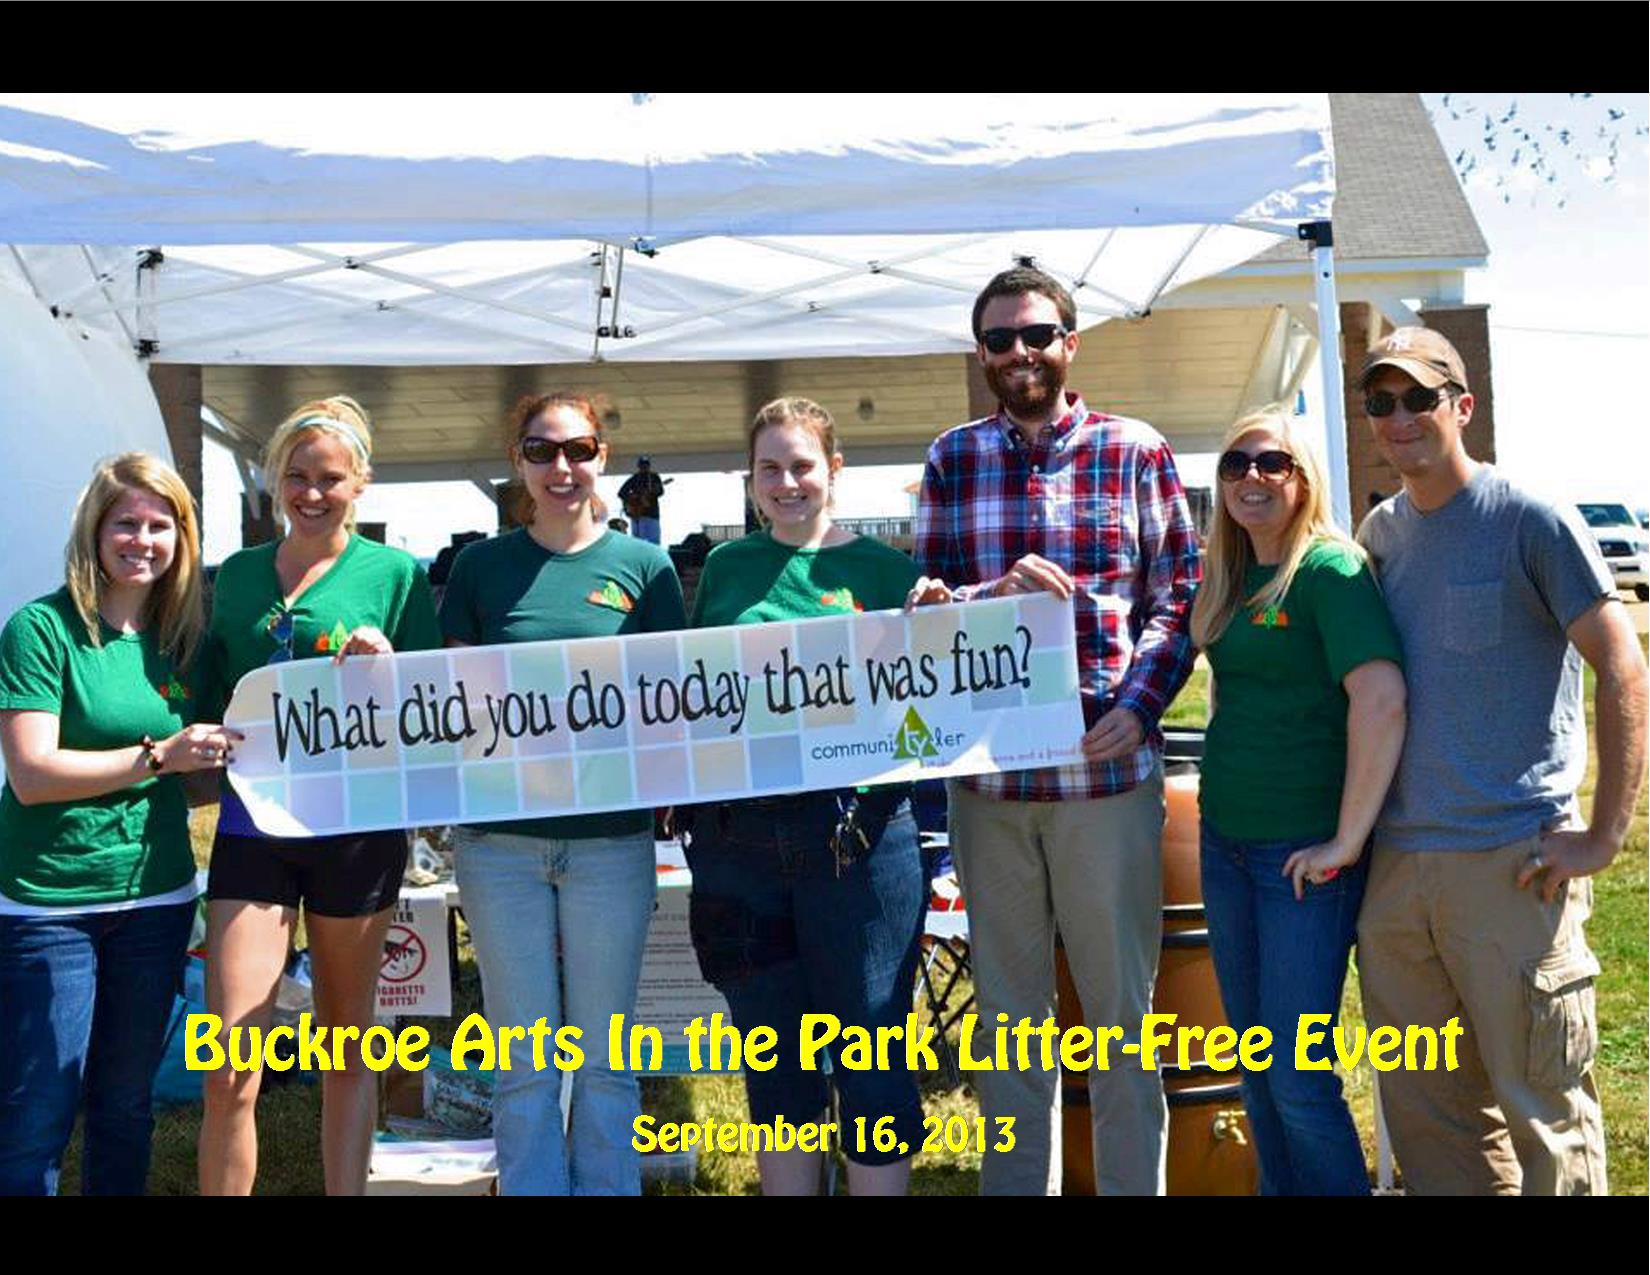 9-16-13 Buckroe Arts in the Park Litter Free Event